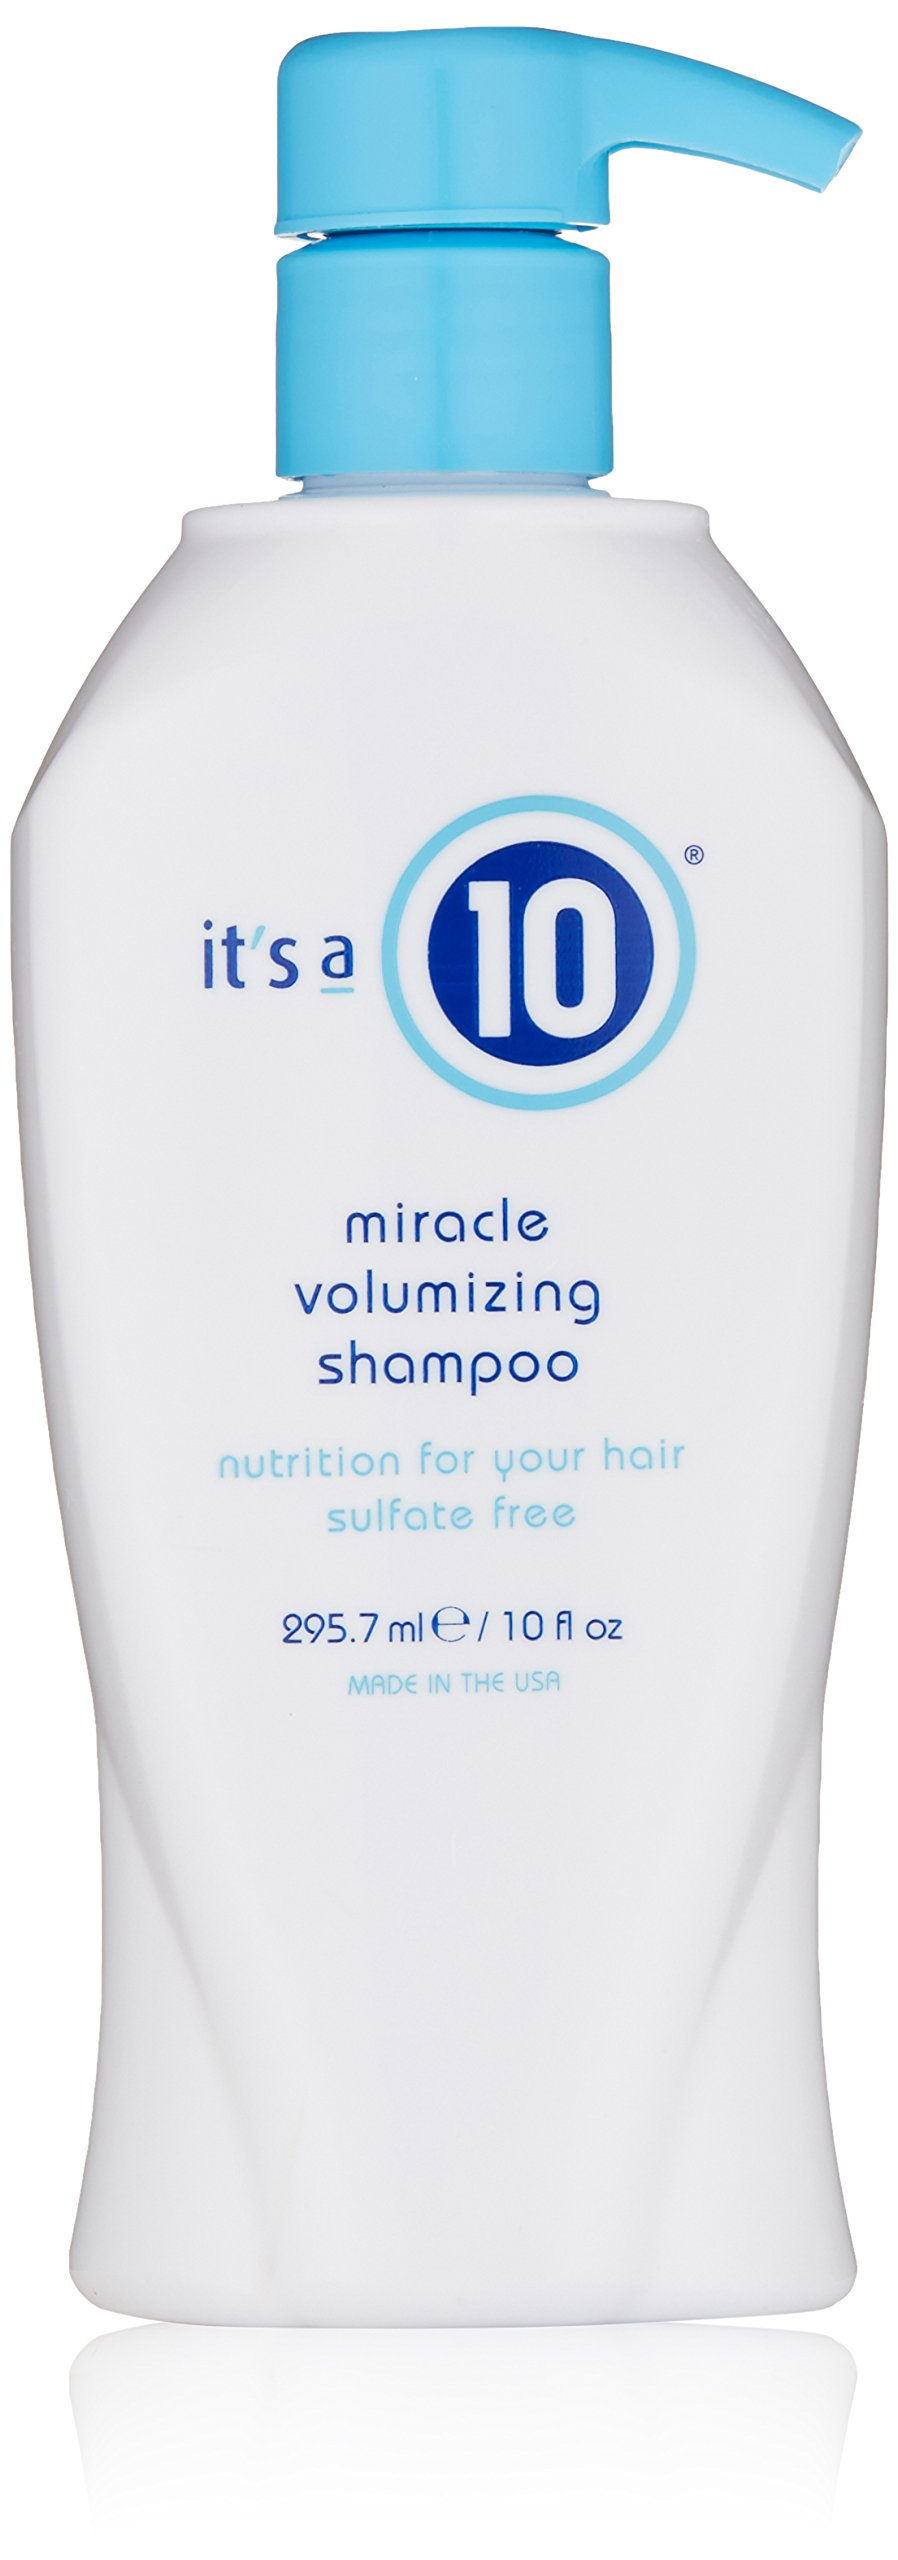 Five Minute Hair Repair For Blondes by It's A 10 #8